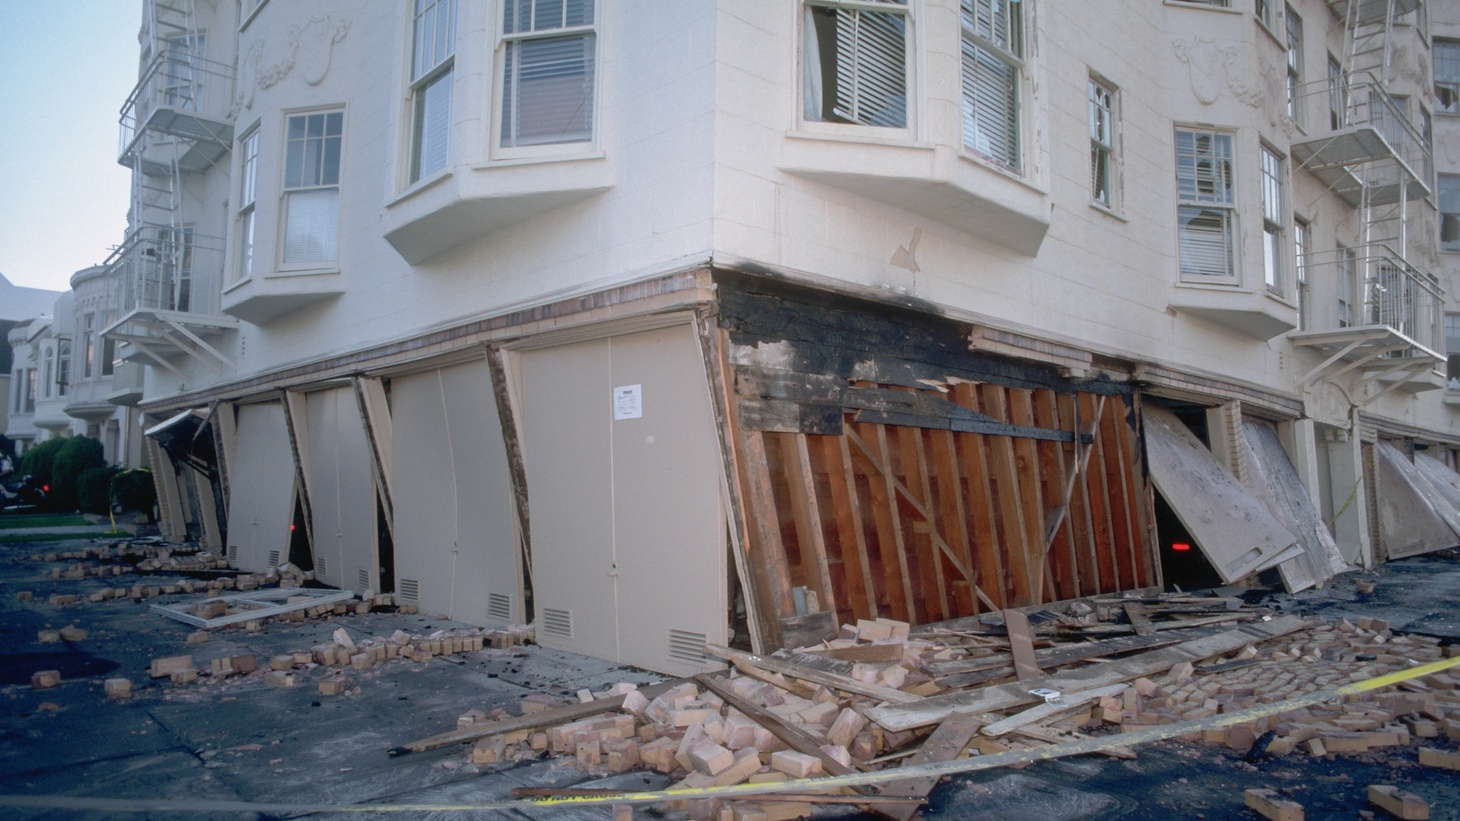 """When the Sylmar Earthquake brought down concrete apartment houses, 52 people were killed. Sixteen lost their lives when wooden, """"soft story"""" buildings collapsed during the Northridge quake. Today, LA City Council members are looking at earthquake retrofitting proposals tough enough to make history. We hear what's at stake for landlords and tenants."""